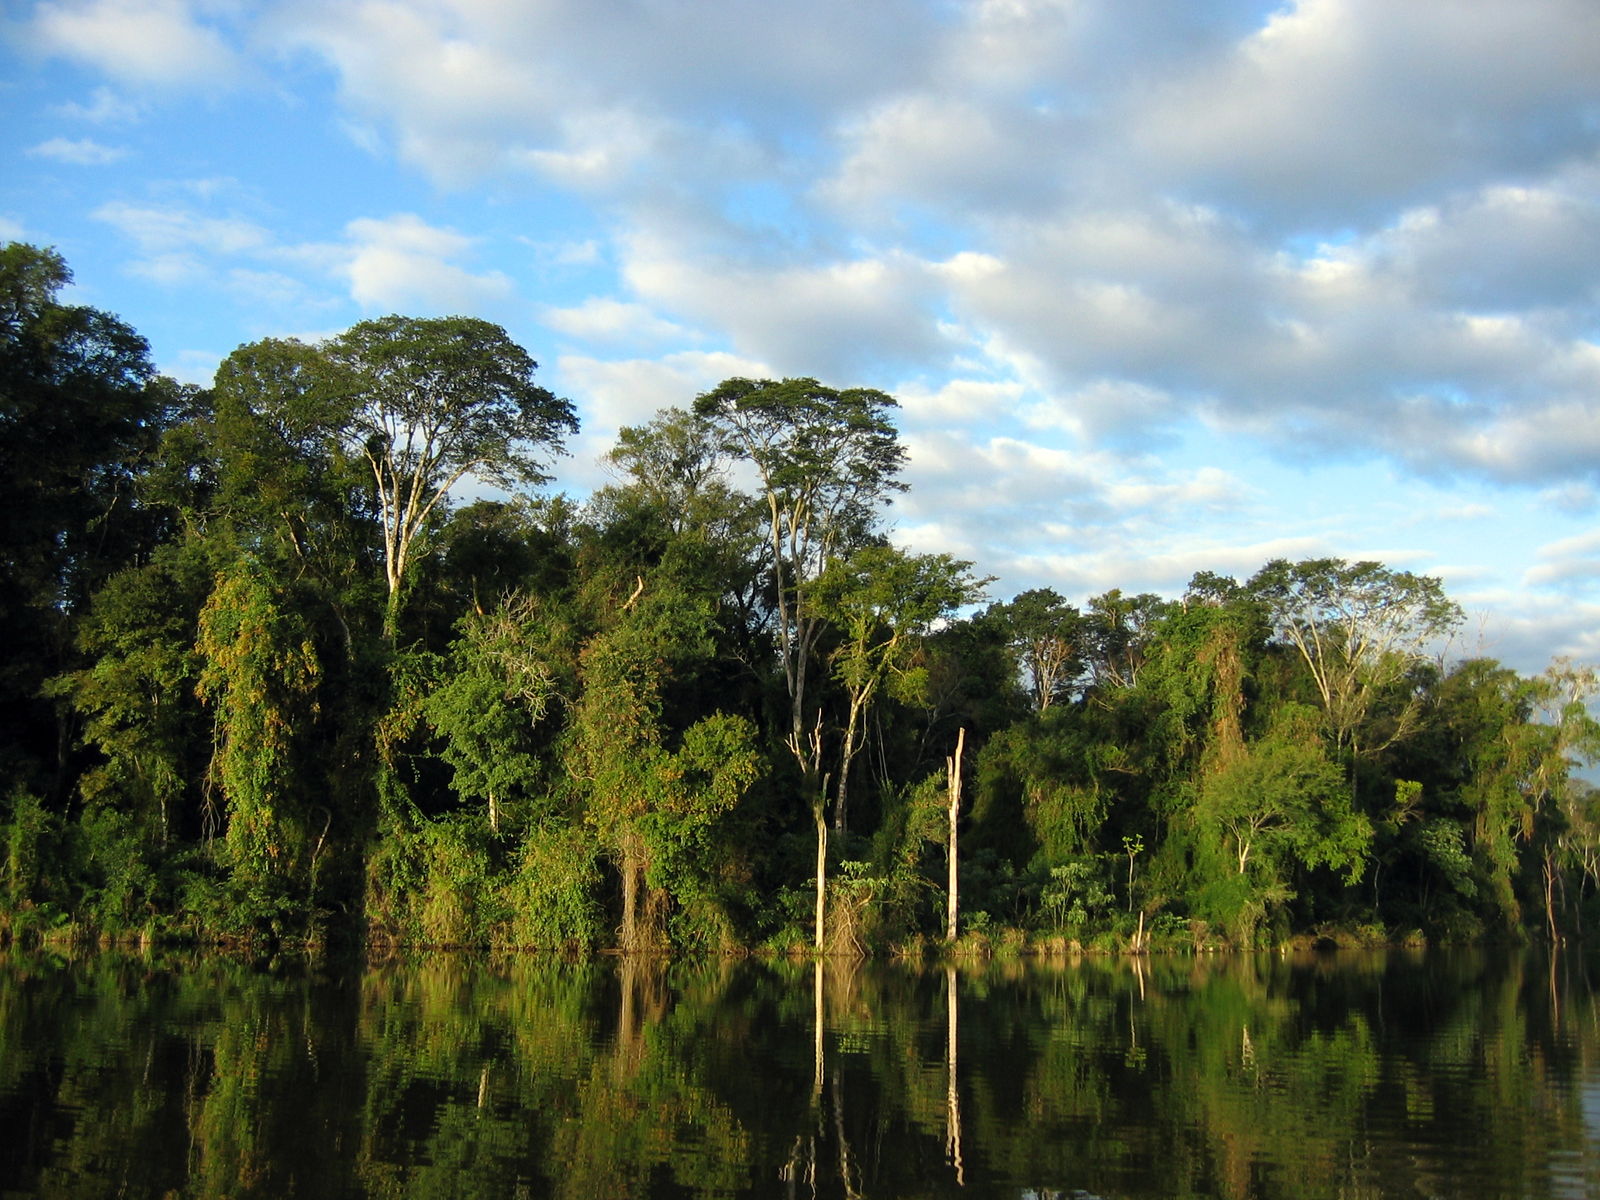 After 500 years of exploitation and destruction, the brazilian atlantic forest has been reduced to less the 8% of its original cover, and climate change may. Conservation And Sustainable Use Of The Atlantic Forest Paraguay Whitley Award